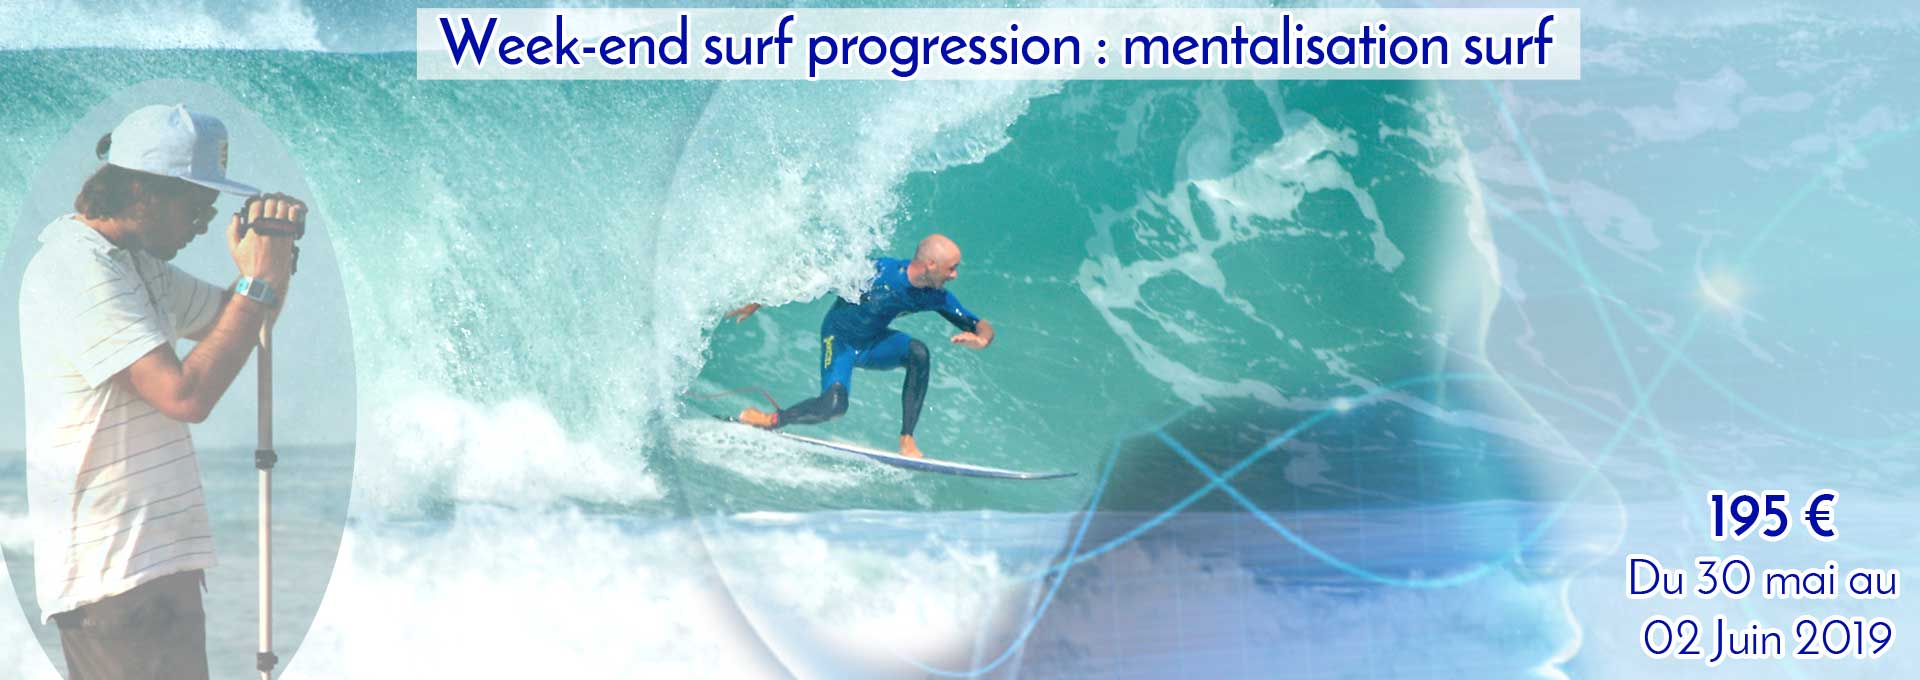 Week end Surf progression : Conscience de soi, conscience de son surf